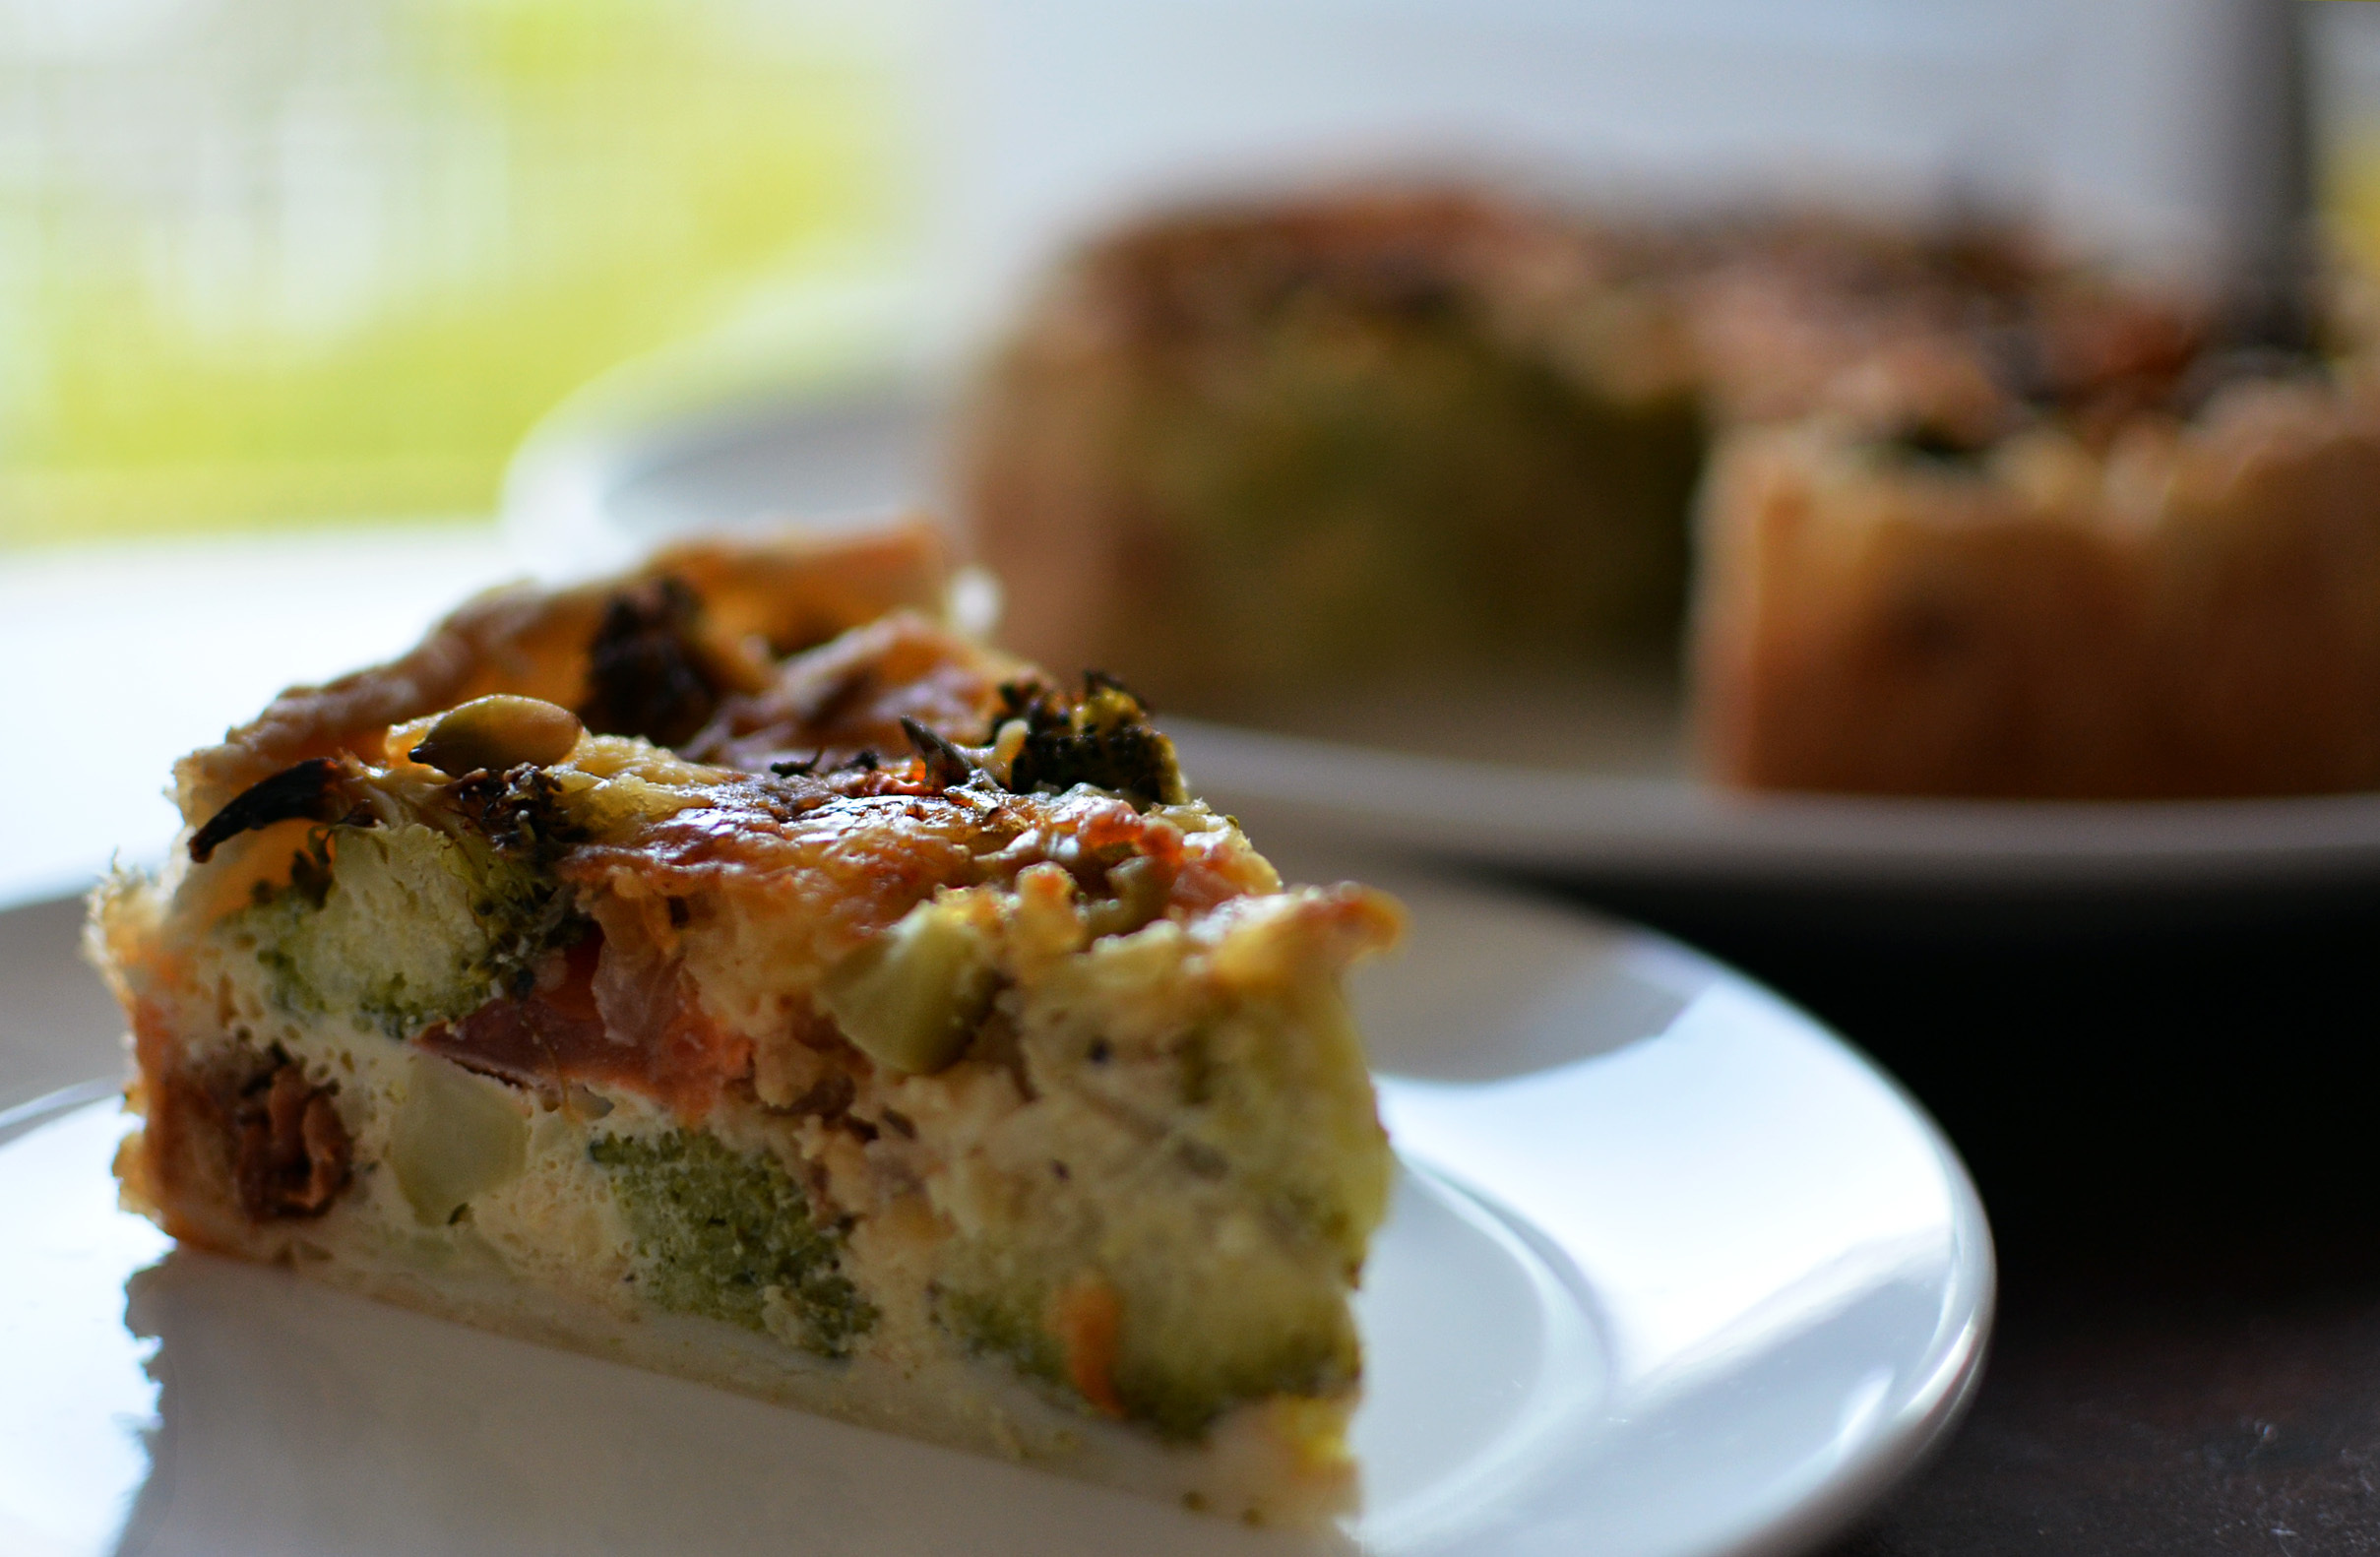 Broccoli quiche met rozemarijn